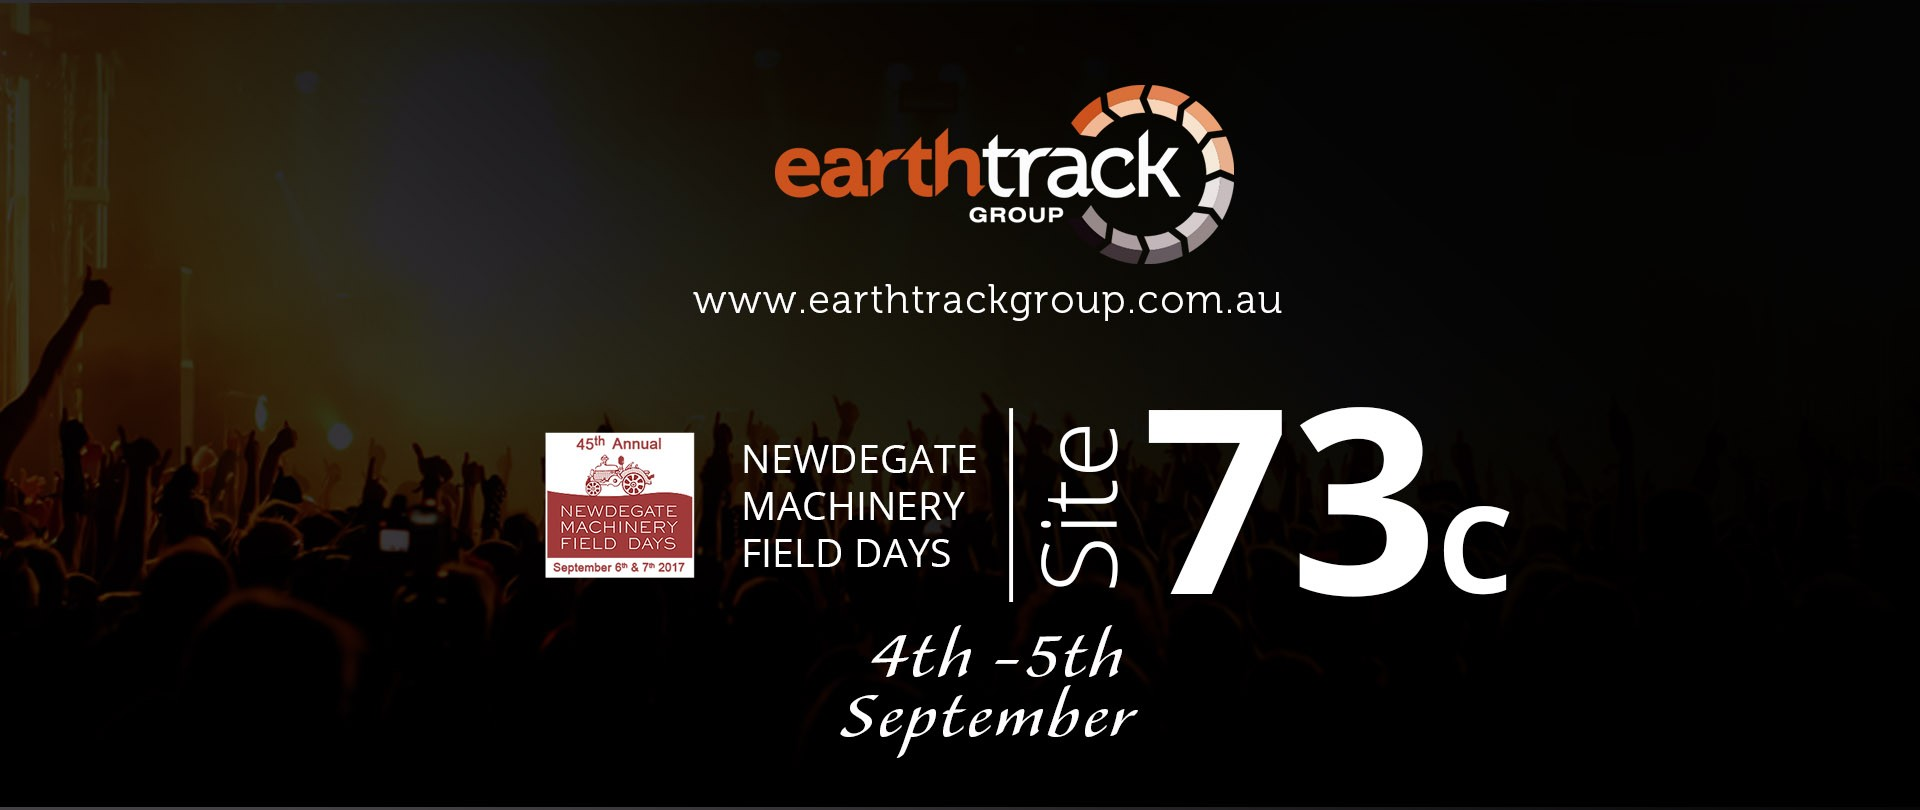 earthtrack at newdegate machinery field days 2019